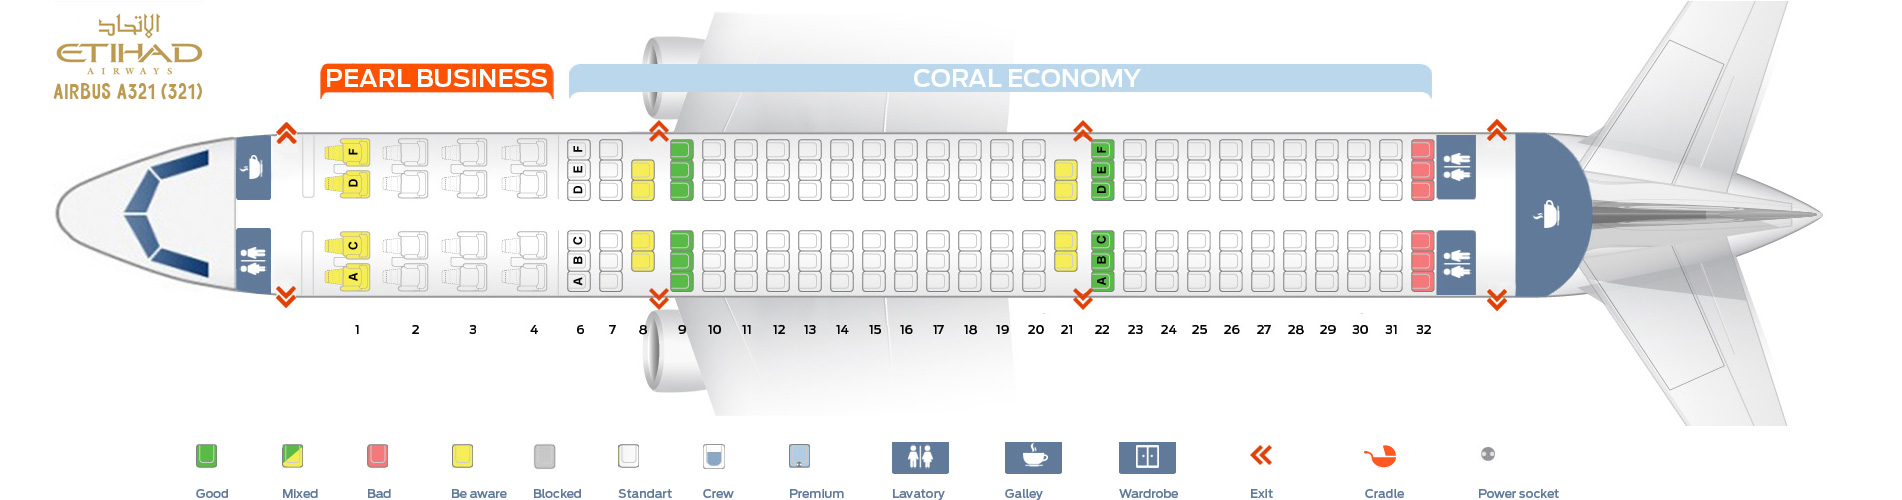 Seat Map Airbus A321-200 Etihad Airways